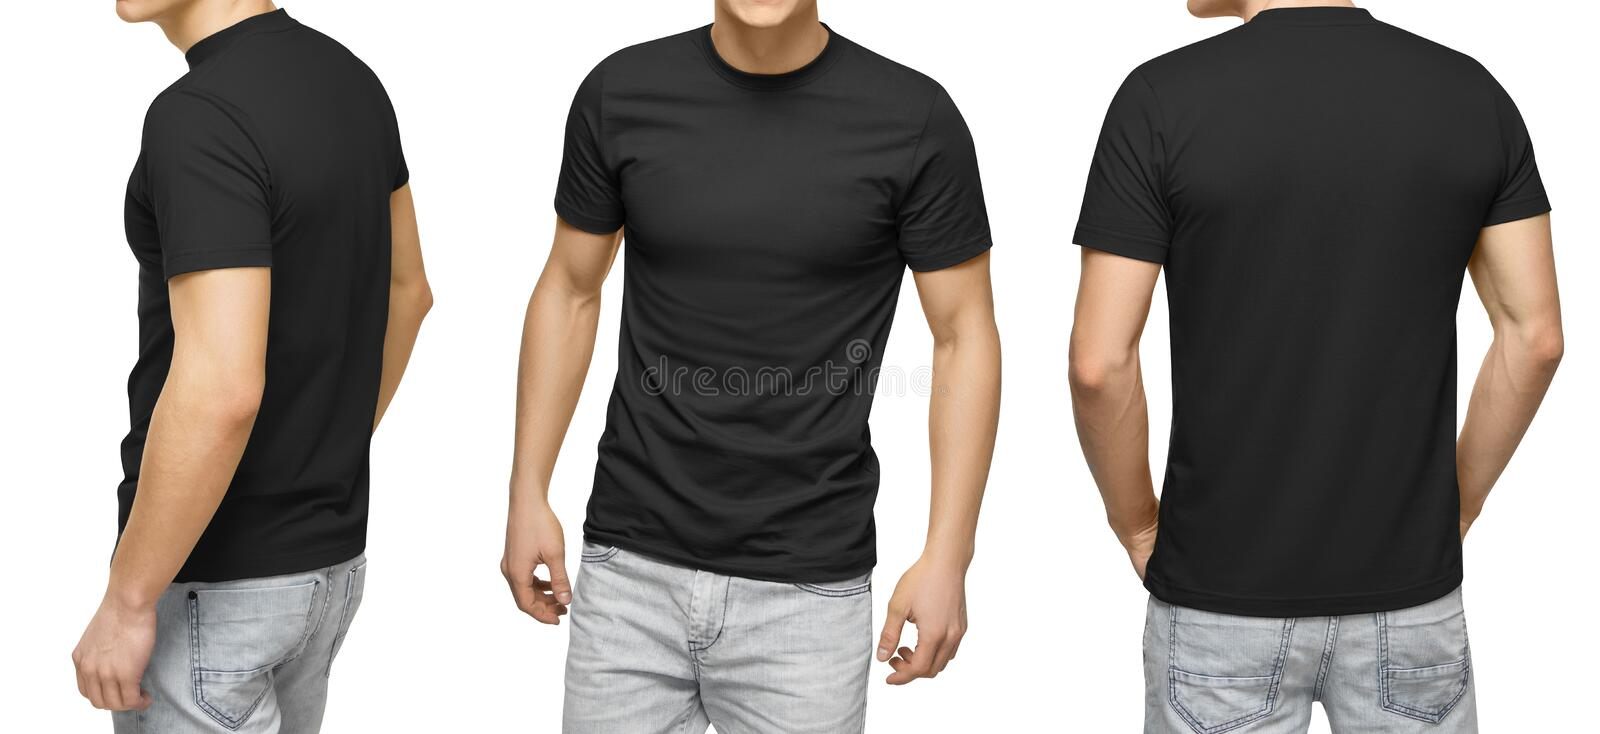 Young Male In Blank Black T-shirt, Front And Back View, White